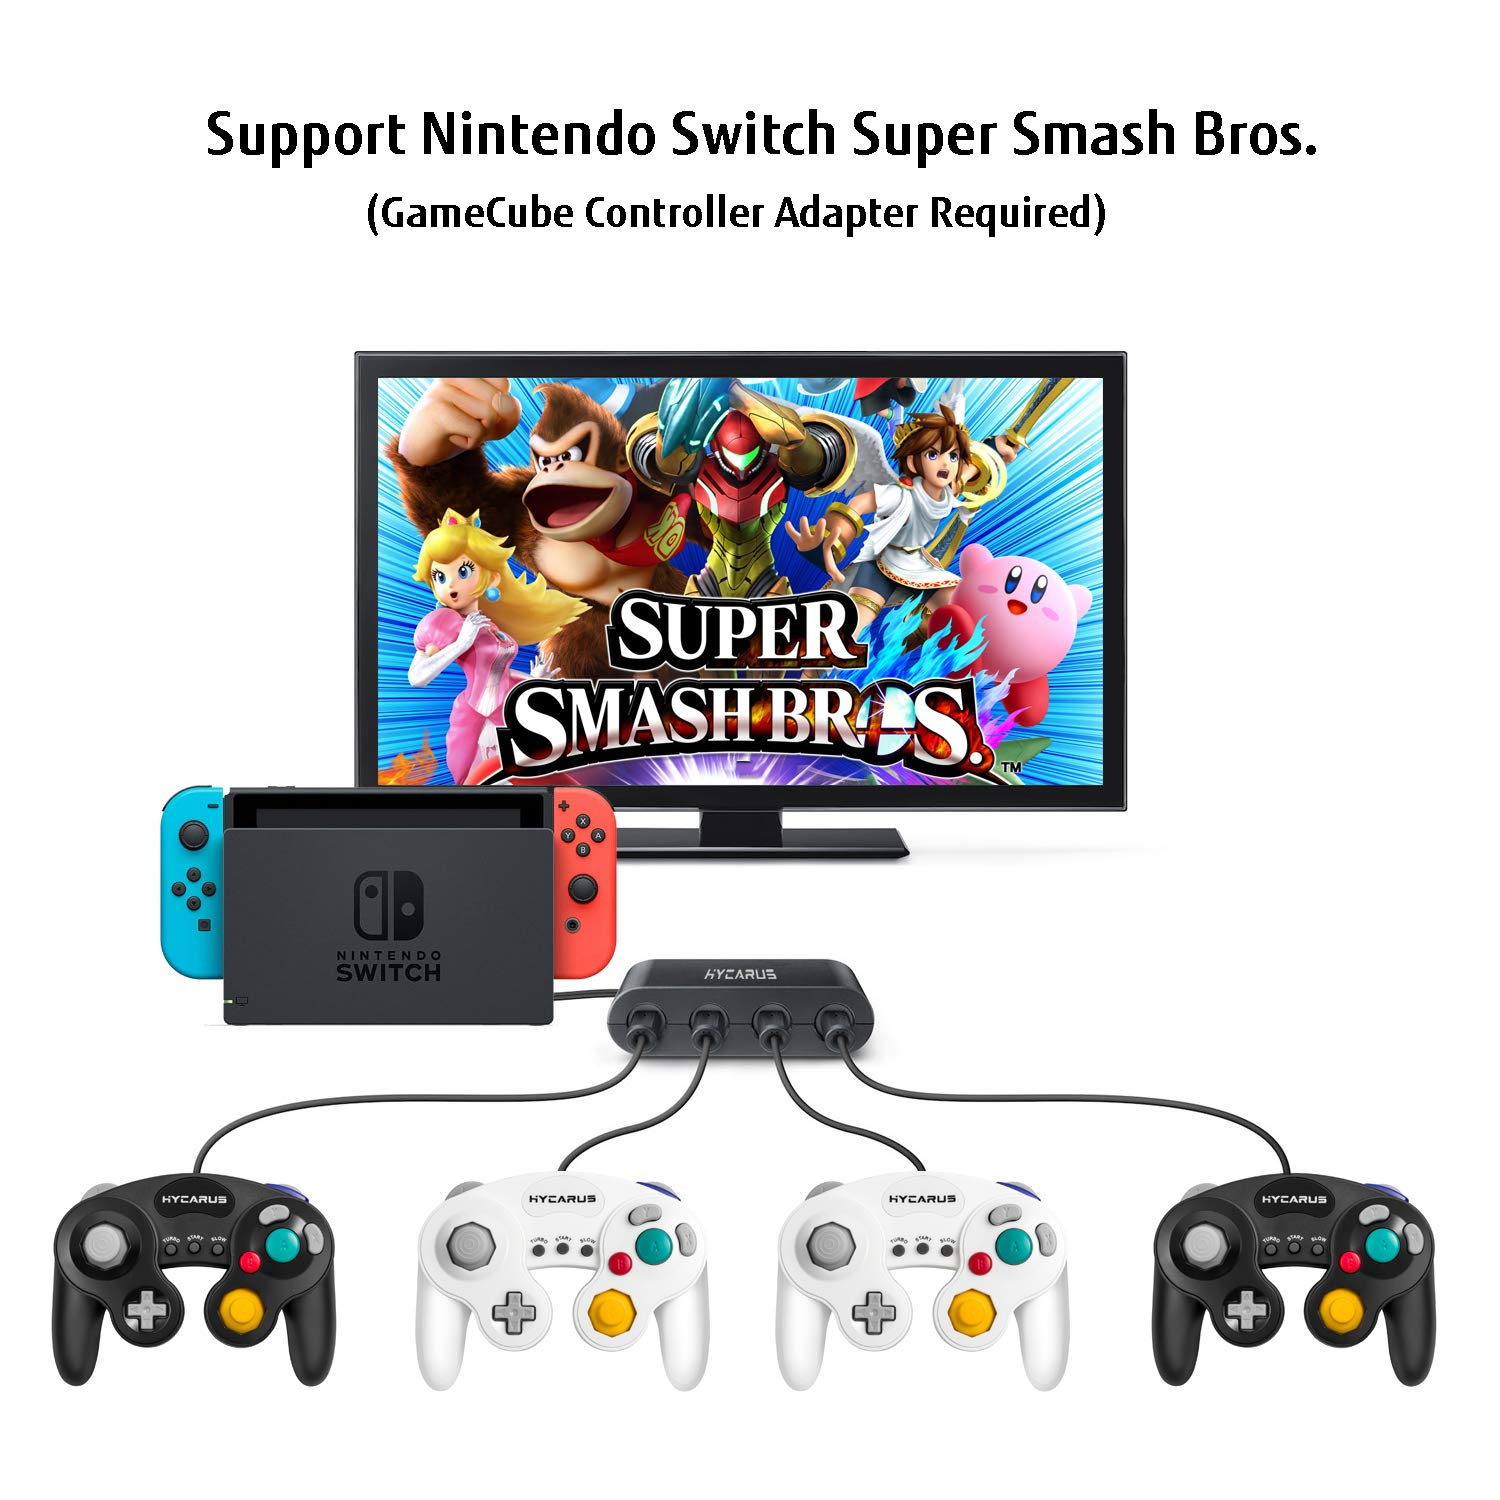 Gamecube Controller Hycarus 2 Packs 9 Feet Wired Wiring Diagram Right Stick With Turbo And Slow Functions For Wii Compatible Nintendo Switch